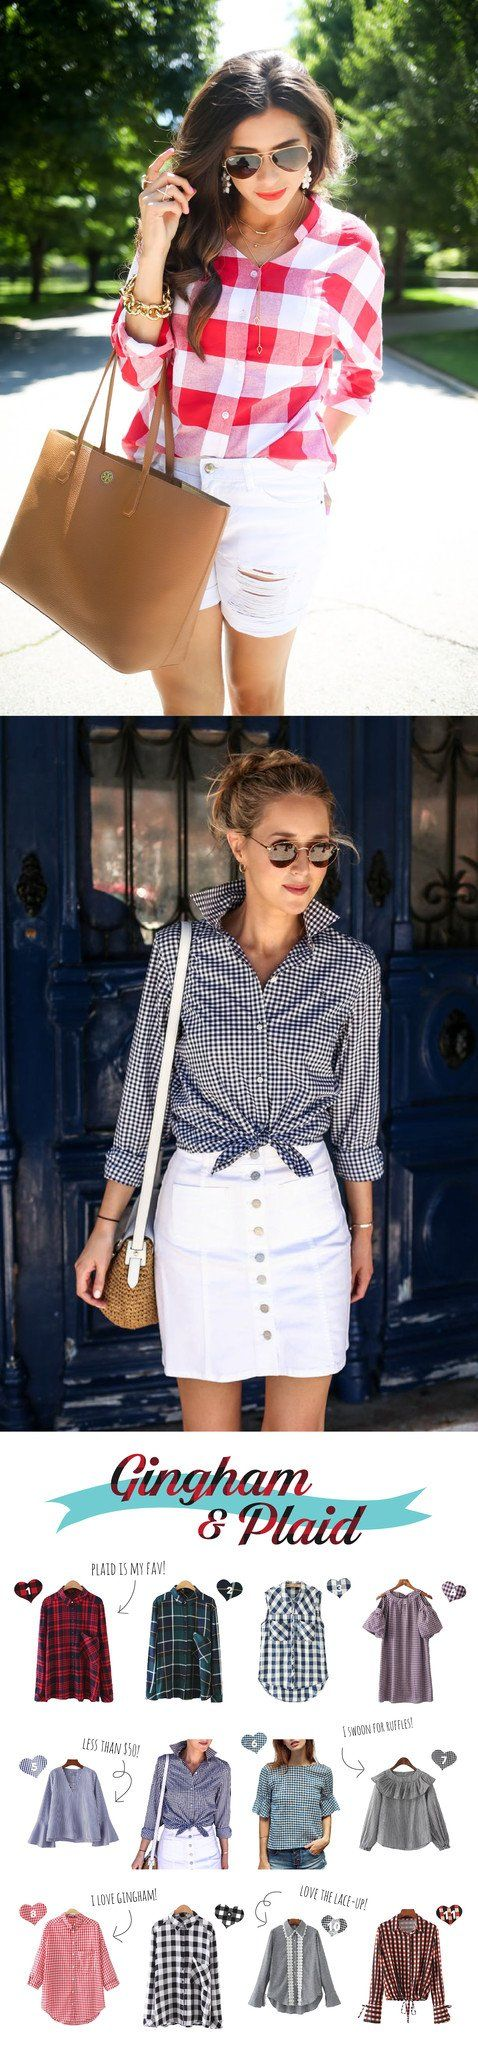 Gingham & Plaid Outfit Ideas Spring 2017 - www.goodnightmacaroon.co Emily Ann Gemma, Mary Orton Fashion Blogger